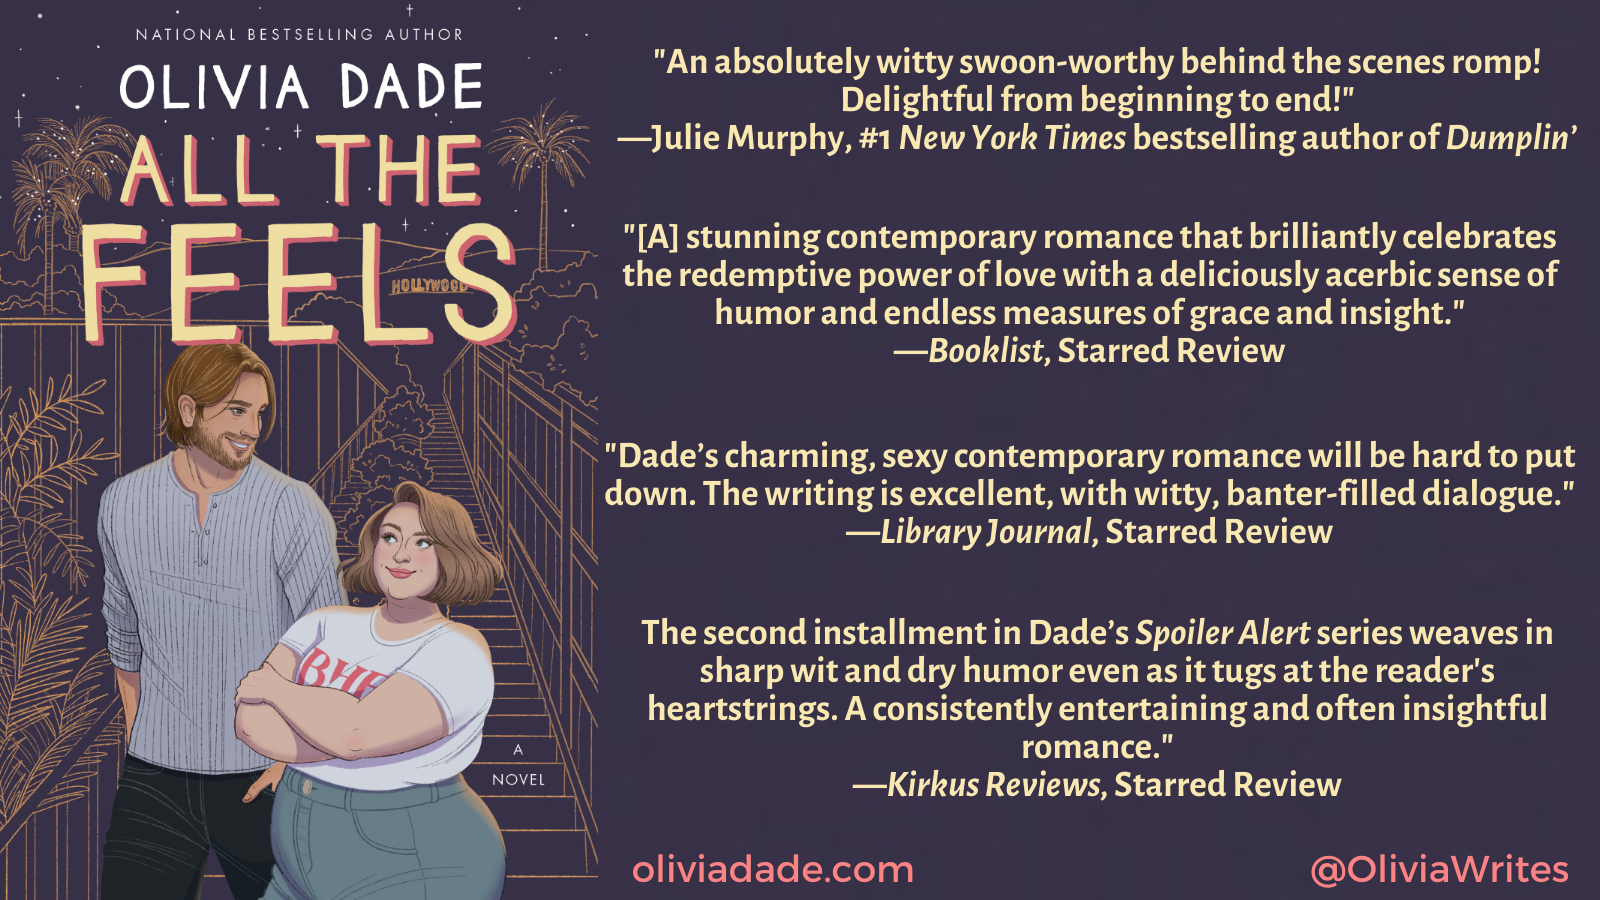 """The cover of Olivia Dade's All the Feels with the following text: """"An absolutely witty swoon-worthy behind the scenes romp! Delightful from beginning to end!"""" —Julie Murphy, #1 New York Times bestselling author of Dumplin'. """"[A] stunning contemporary romance that brilliantly celebrates the redemptive power of love. With a deliciously acerbic sense of humor and endless measures of grace and insight, Dade ... skillfully develops both the sweet emotional connection and the searingly sensual attraction that evolve between Alex and Lauren."""" —Booklist, Starred Review. """"Dade's charming, sexy contemporary romance will be hard to put down. Alex and Lauren are likable, well-developed characters with emotional depth and relatable backstories. ... The writing is excellent, with witty, banter-filled dialogue."""" —Library Journal, Starred Review The second installment in Dade's Spoiler Alert series weaves in sharp wit and dry humor even as it tugs at the reader's heartstrings. ... A consistently entertaining and often insightful romance."""" —Kirkus Reviews, Starred Review"""